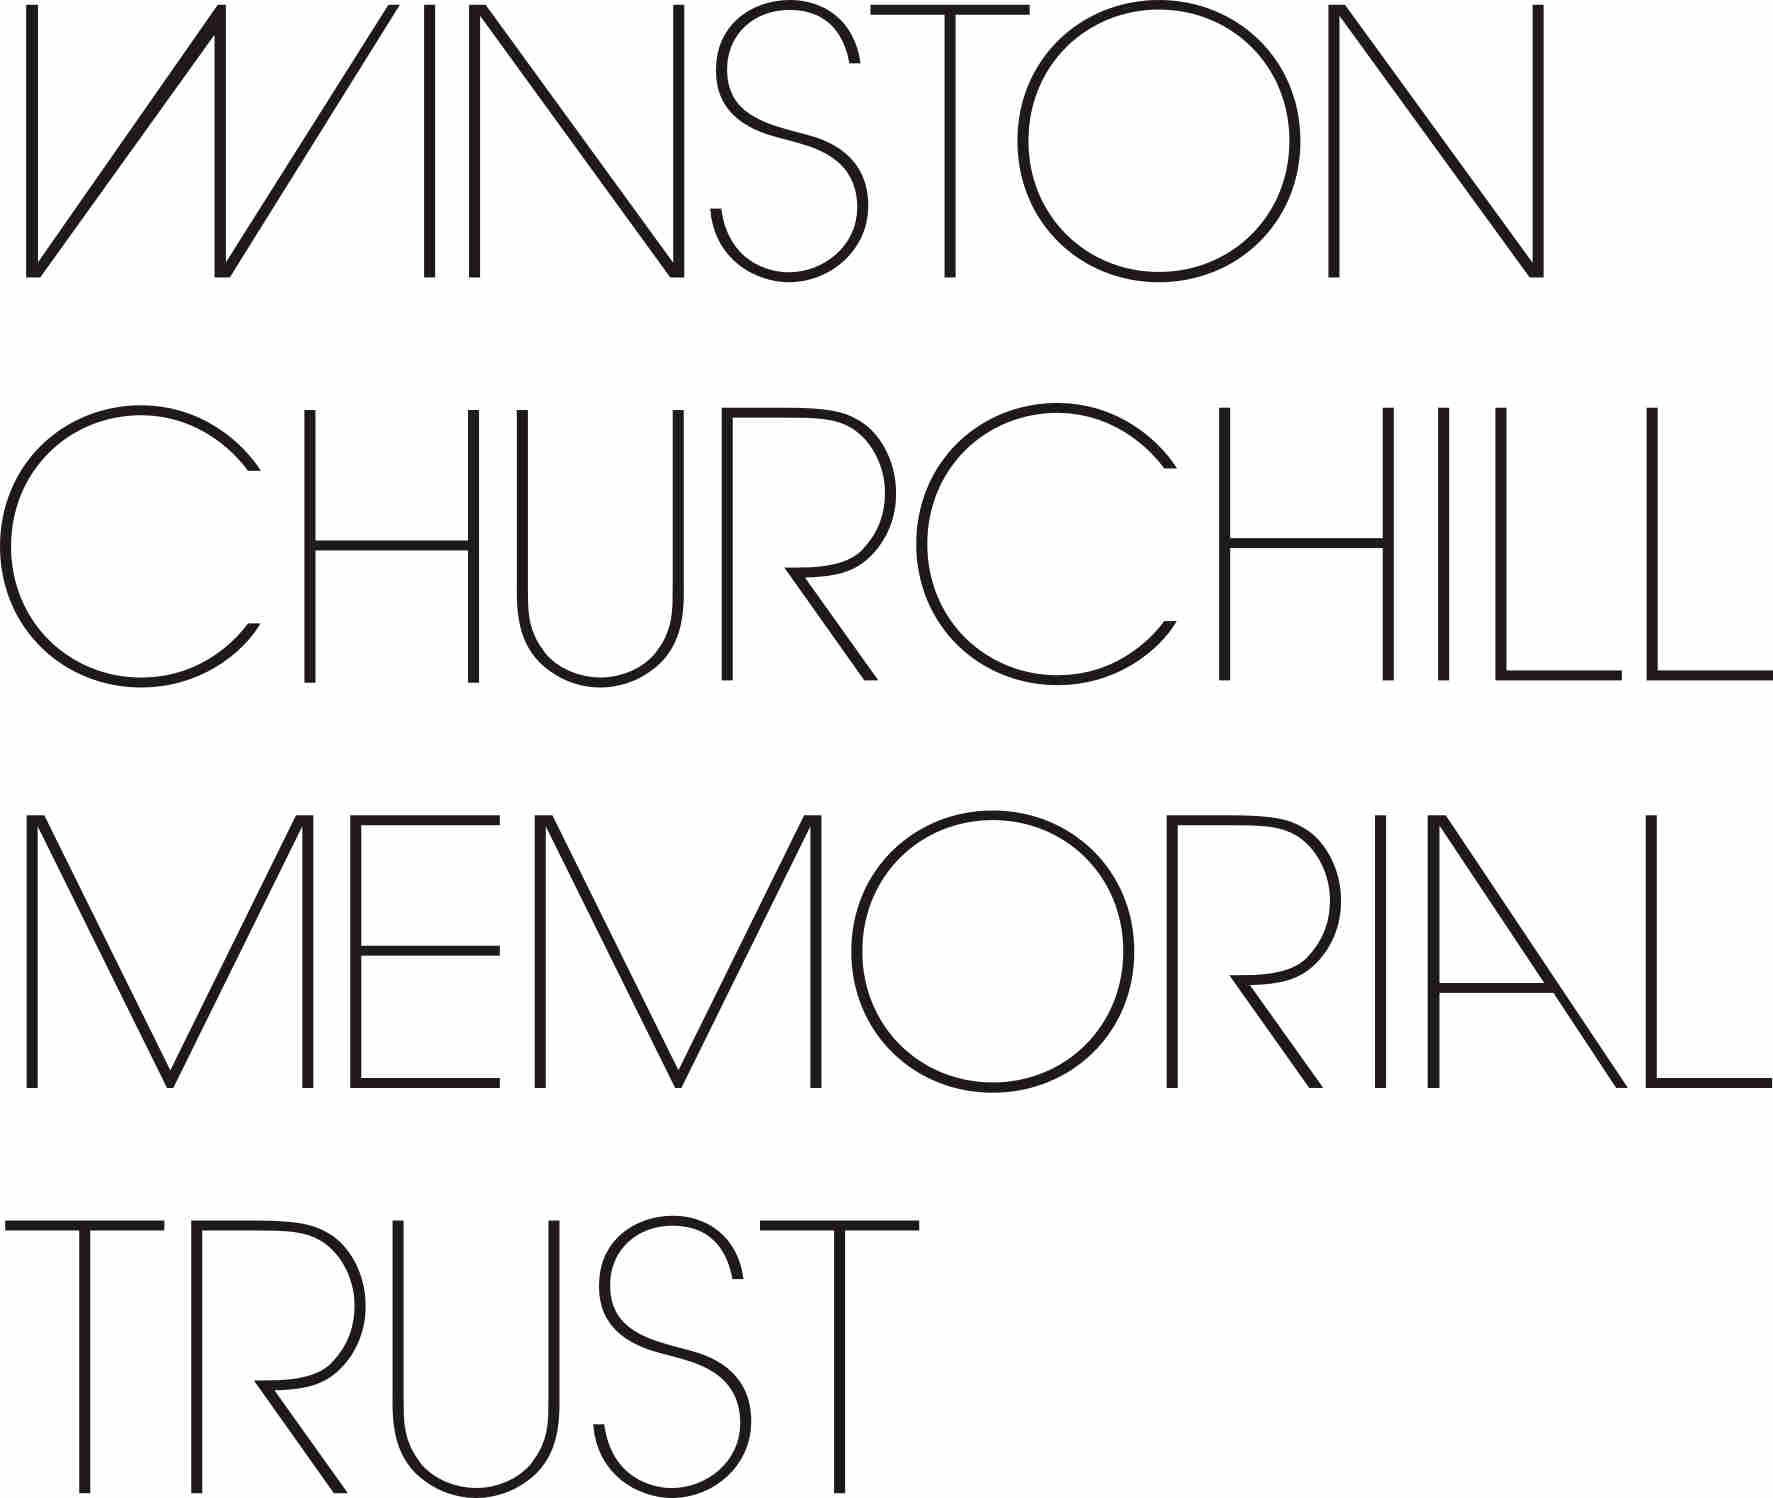 Winston Churchill Fellowship Report: Exploring Accessibility in the